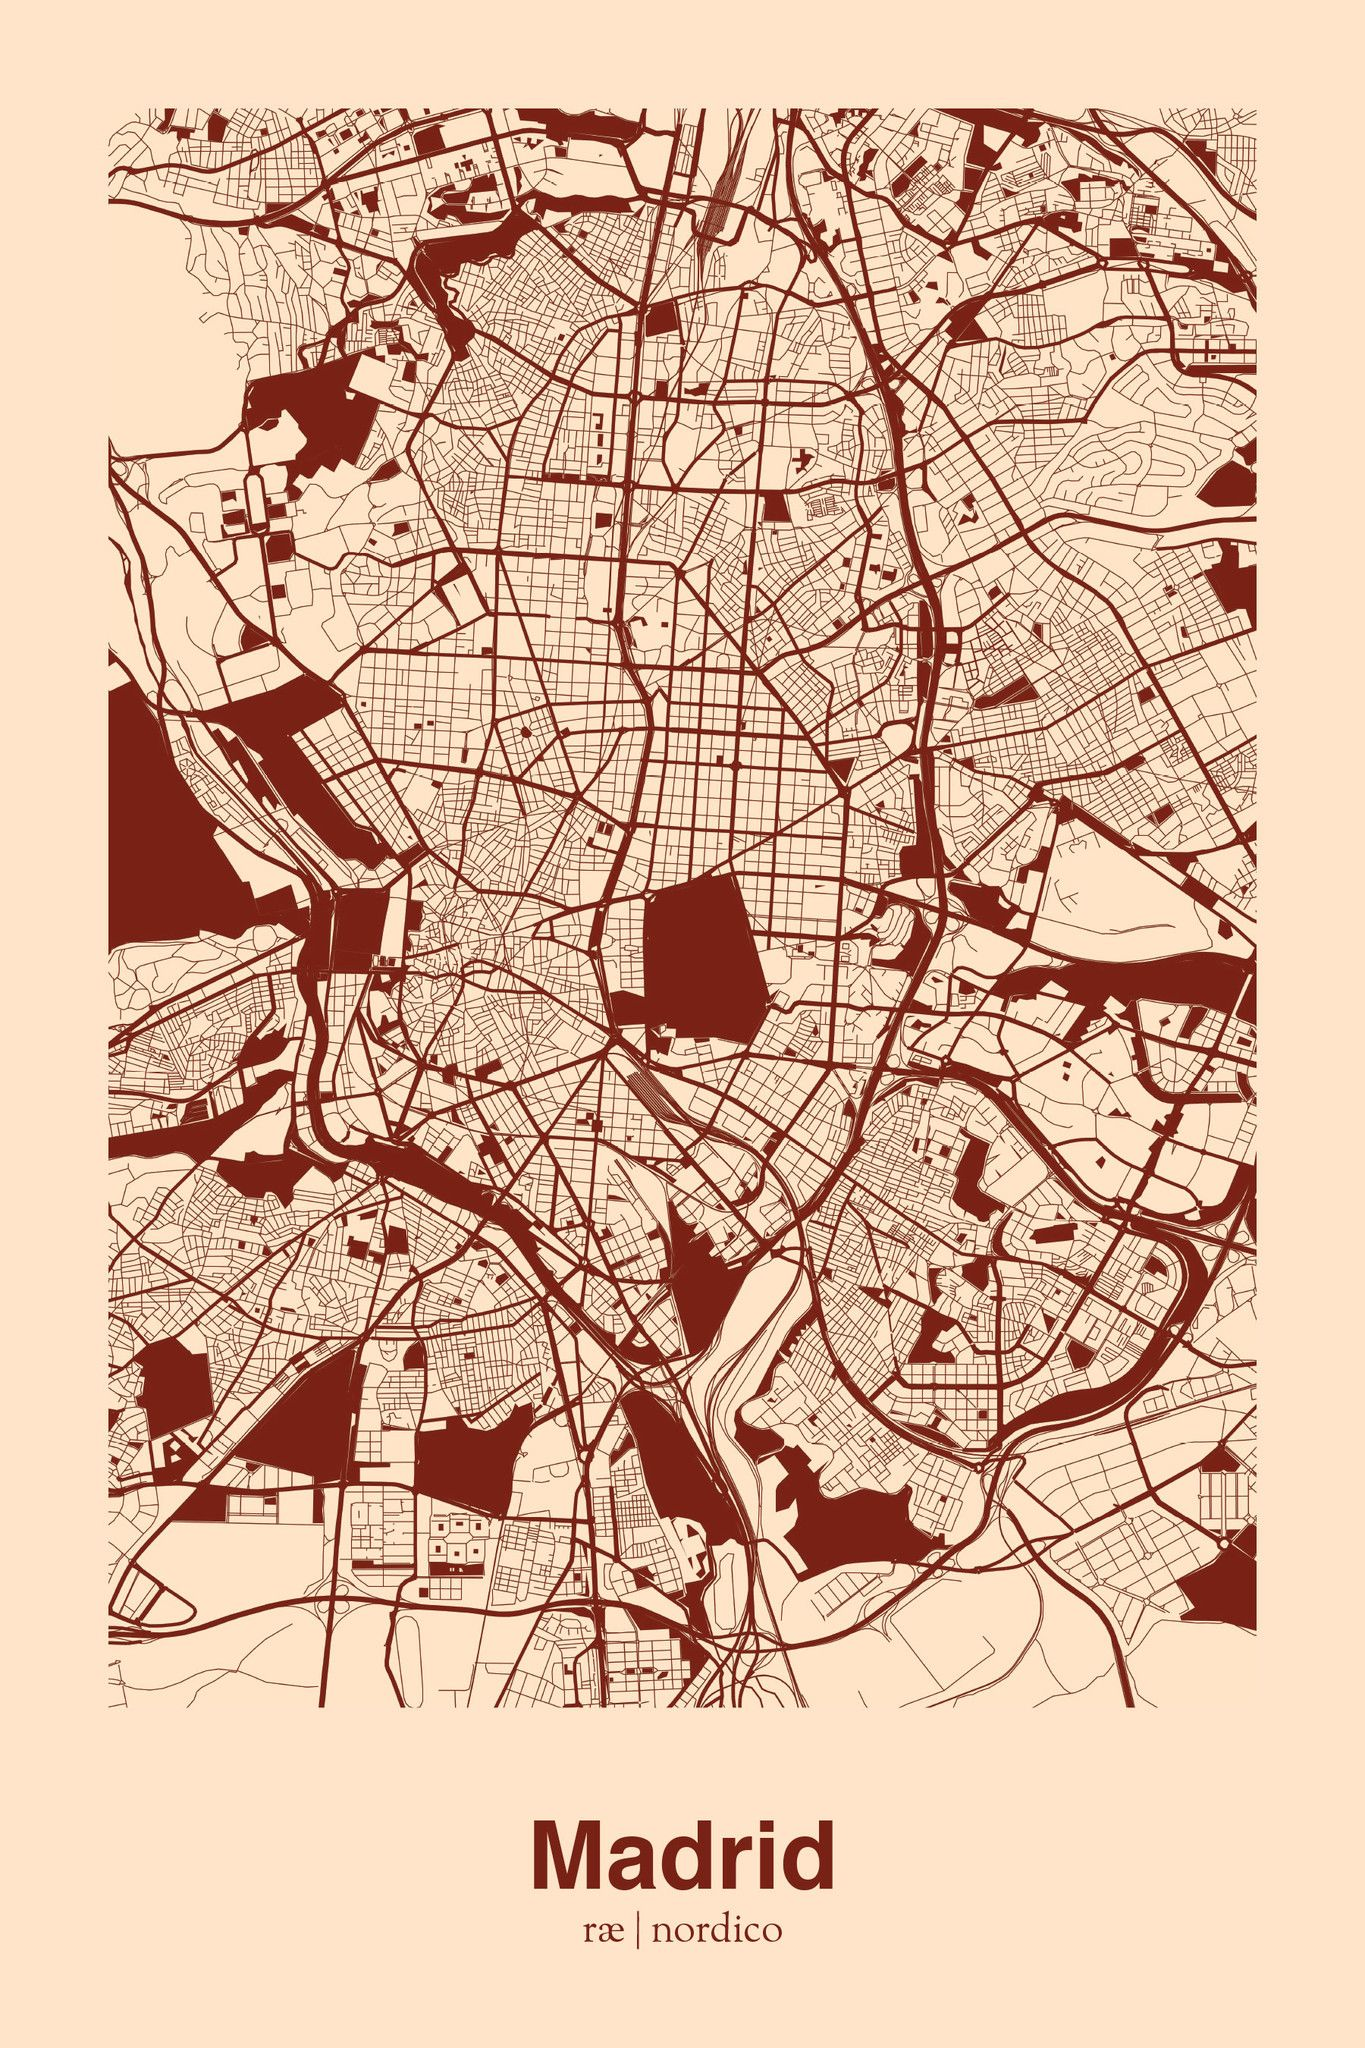 Madrid Map Print With Images Map Design Map Art Urban Mapping